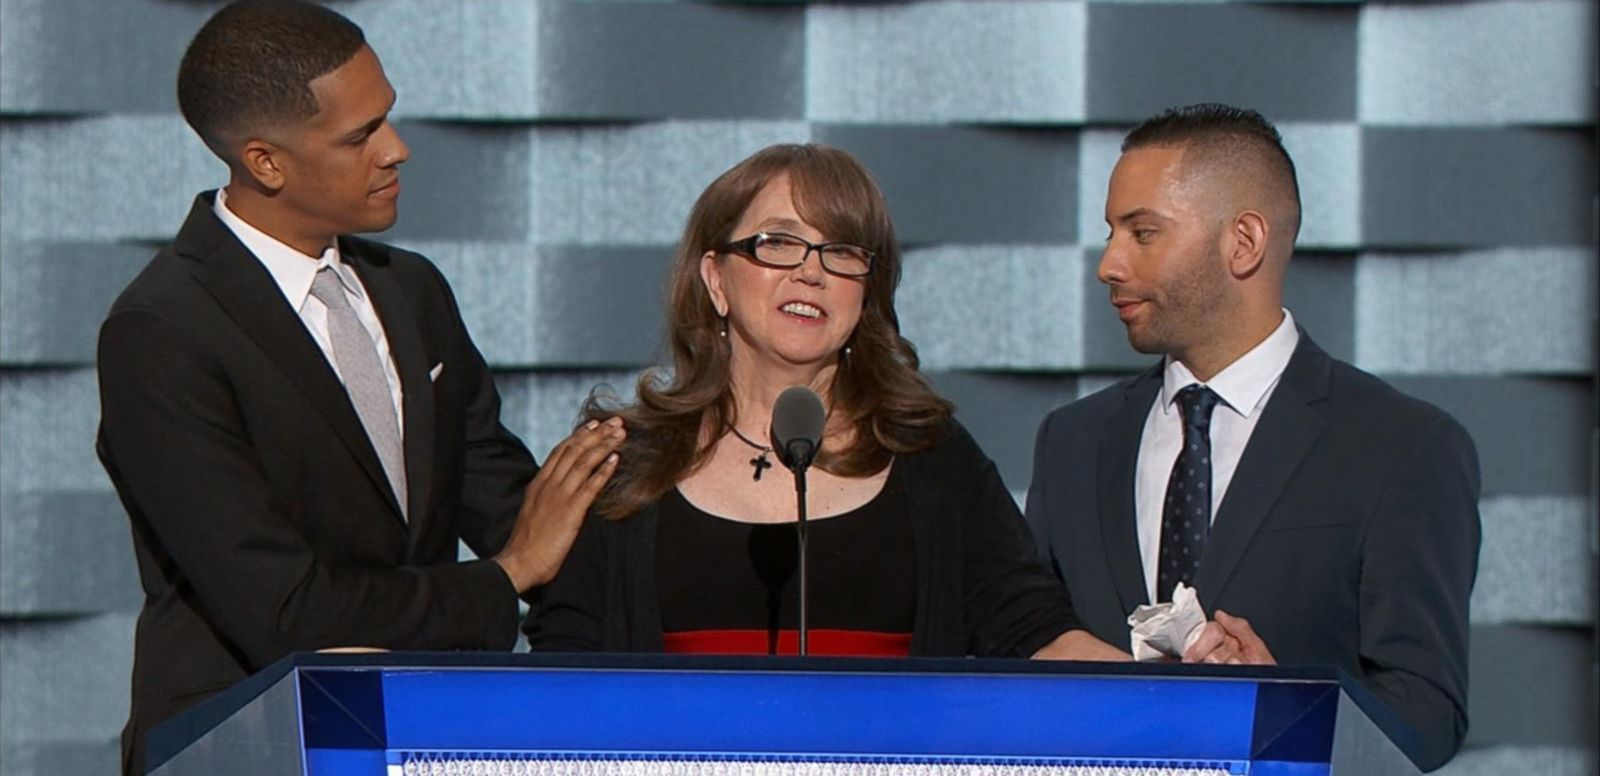 VIDEO: Pulse Shooting Victim's Mother Speaks at the DNC